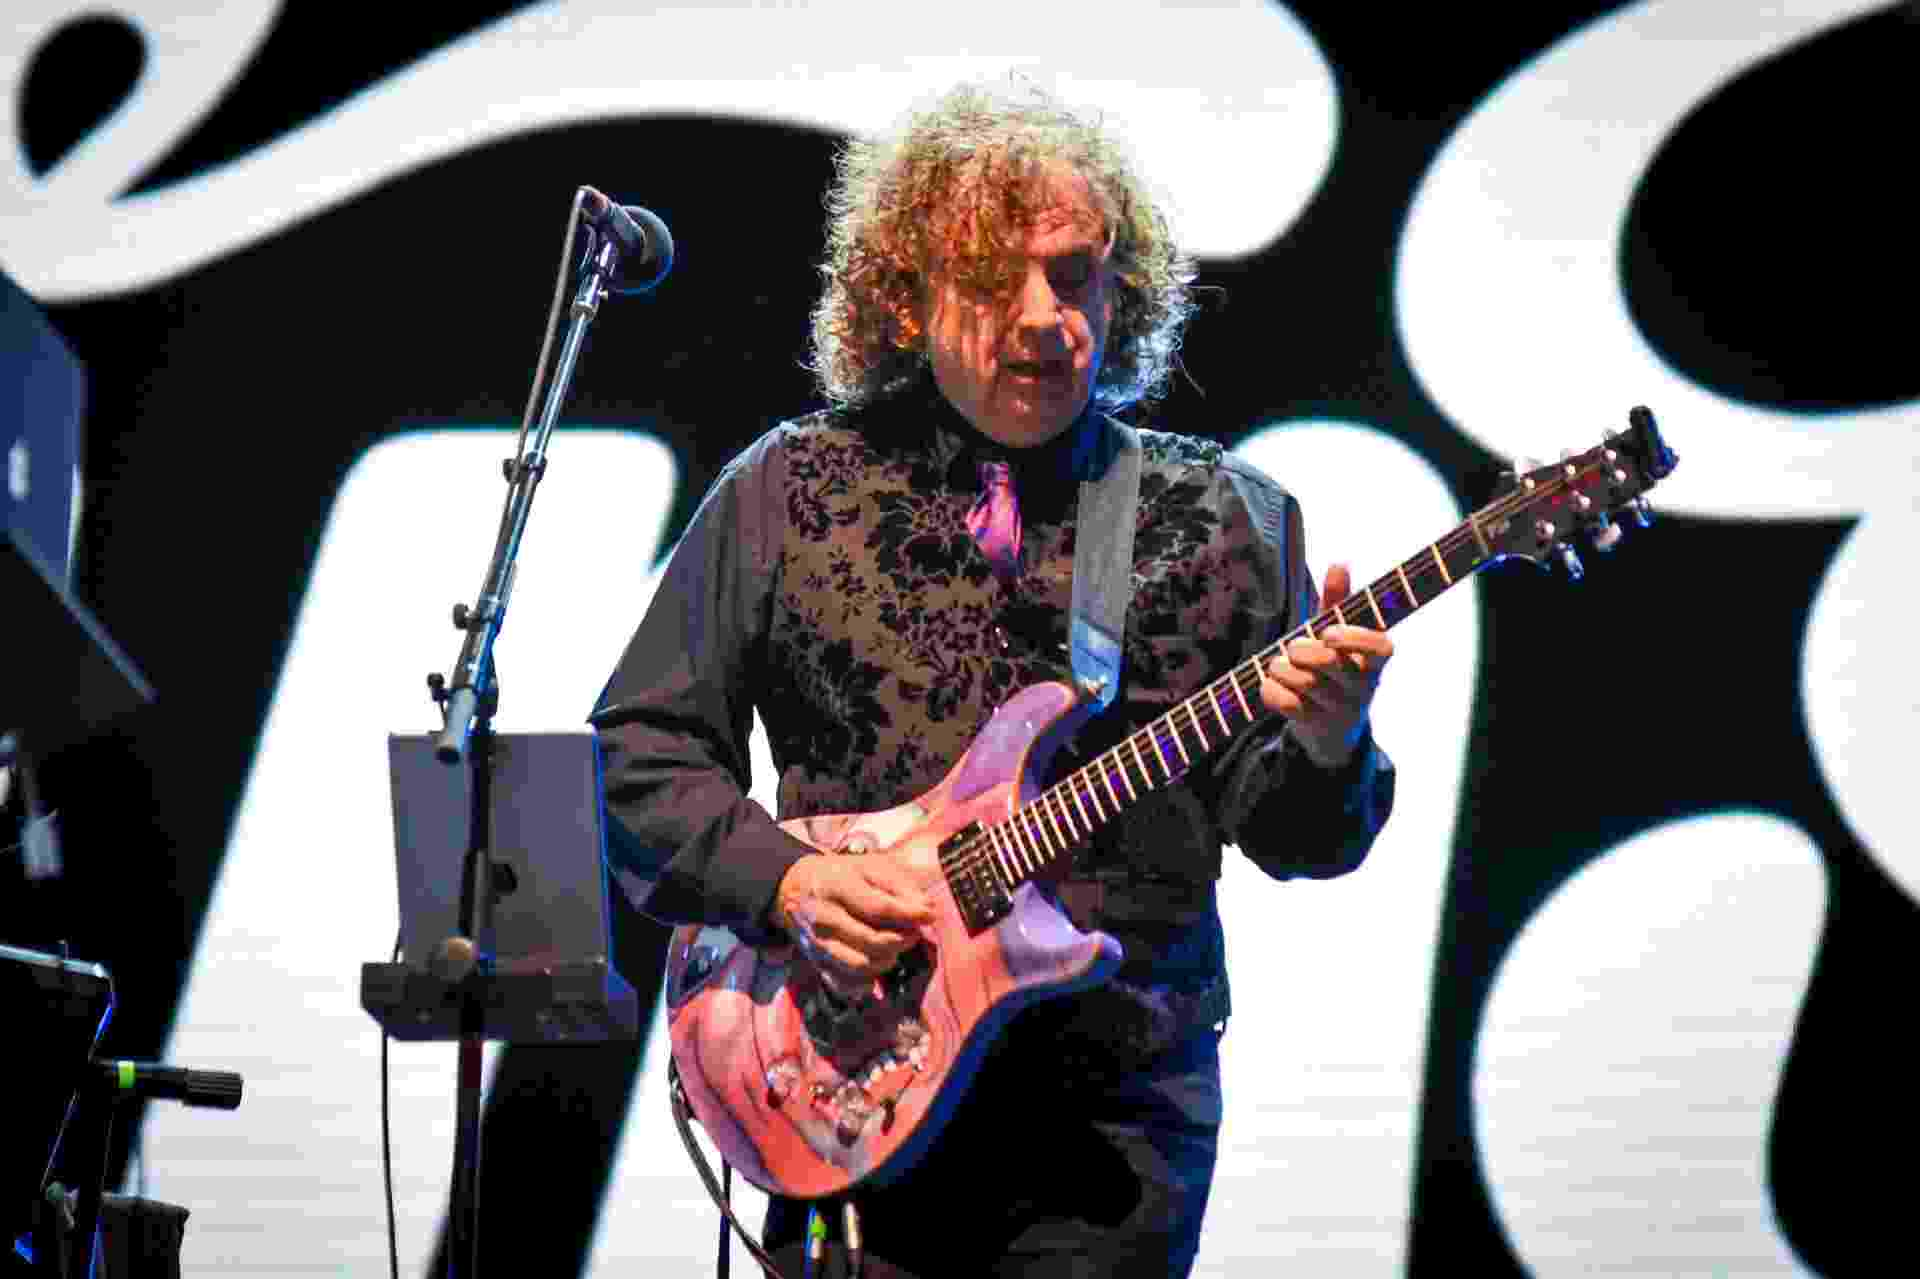 Jakko Jakszyk, vocal e guitarra do King Crimson, no Palco Sunset do Rock in Rio 2019 - FERNANDA BALSTER/FOTOARENA/ESTADÃO CONTEÚDO